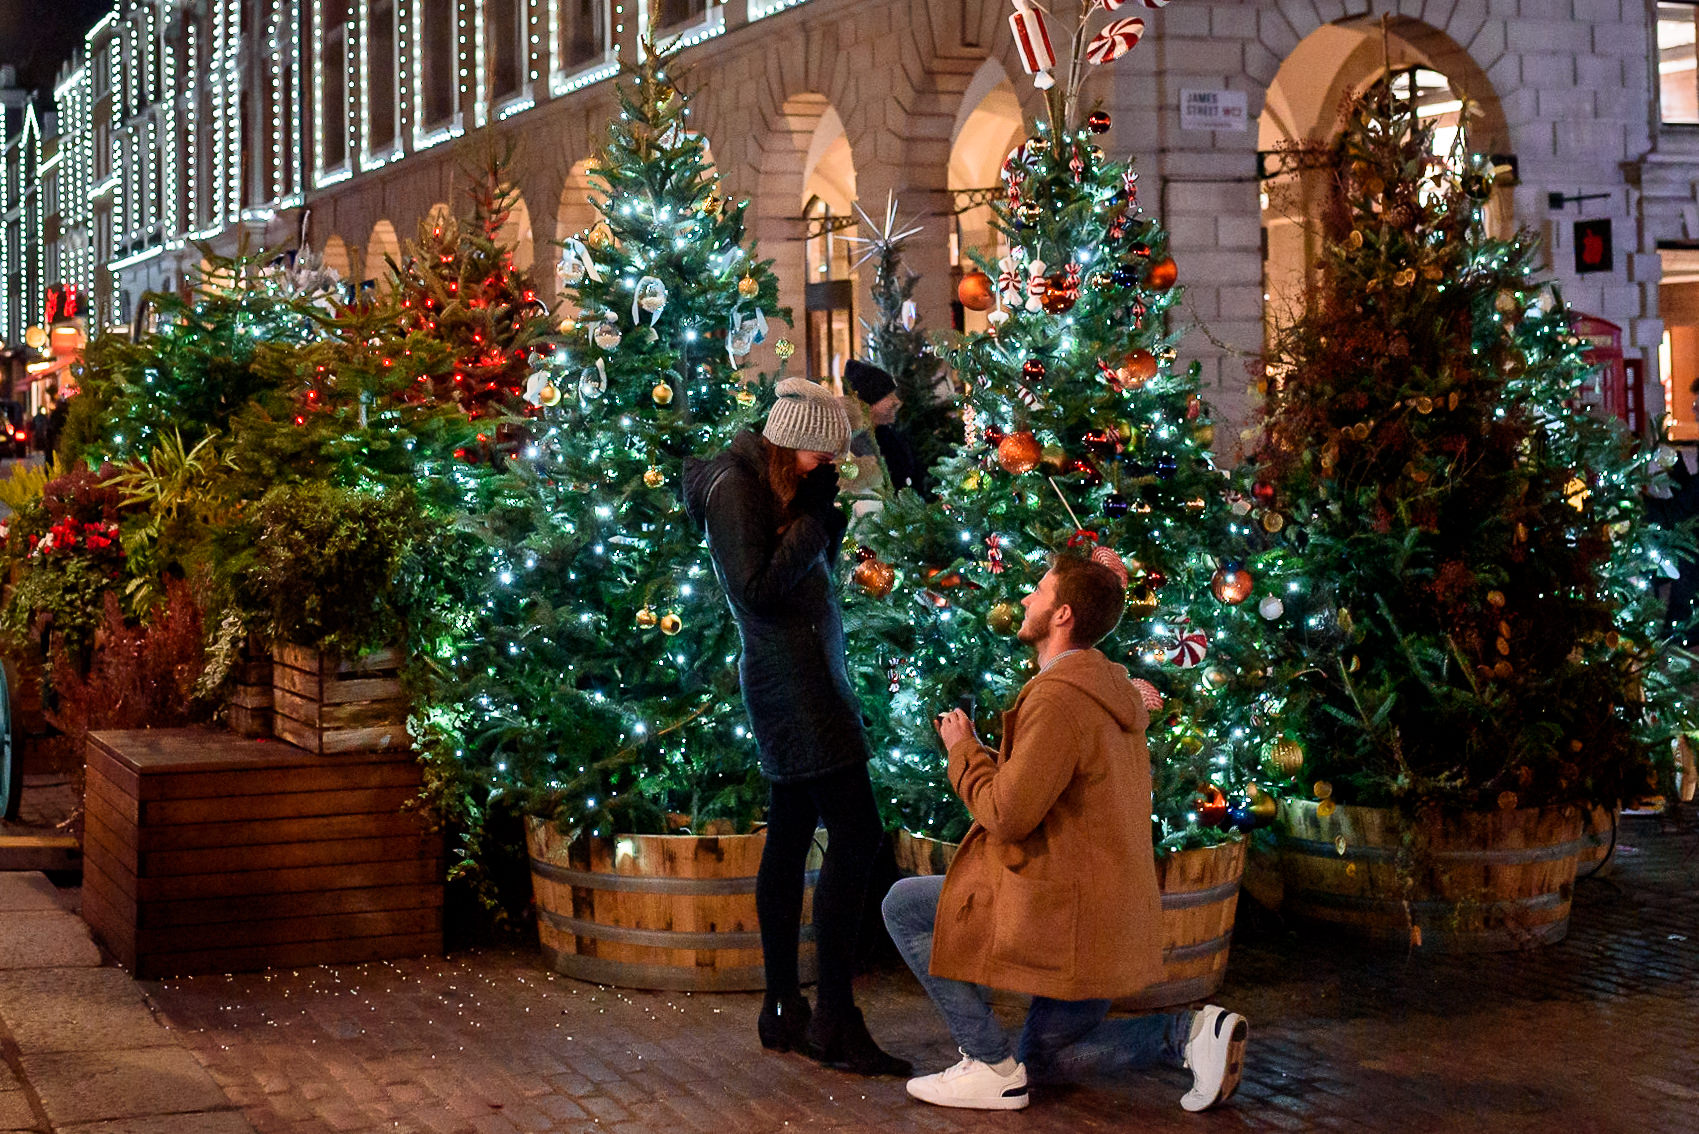 Proposing to his girlfriend at Covent Garden Christmas Market in London